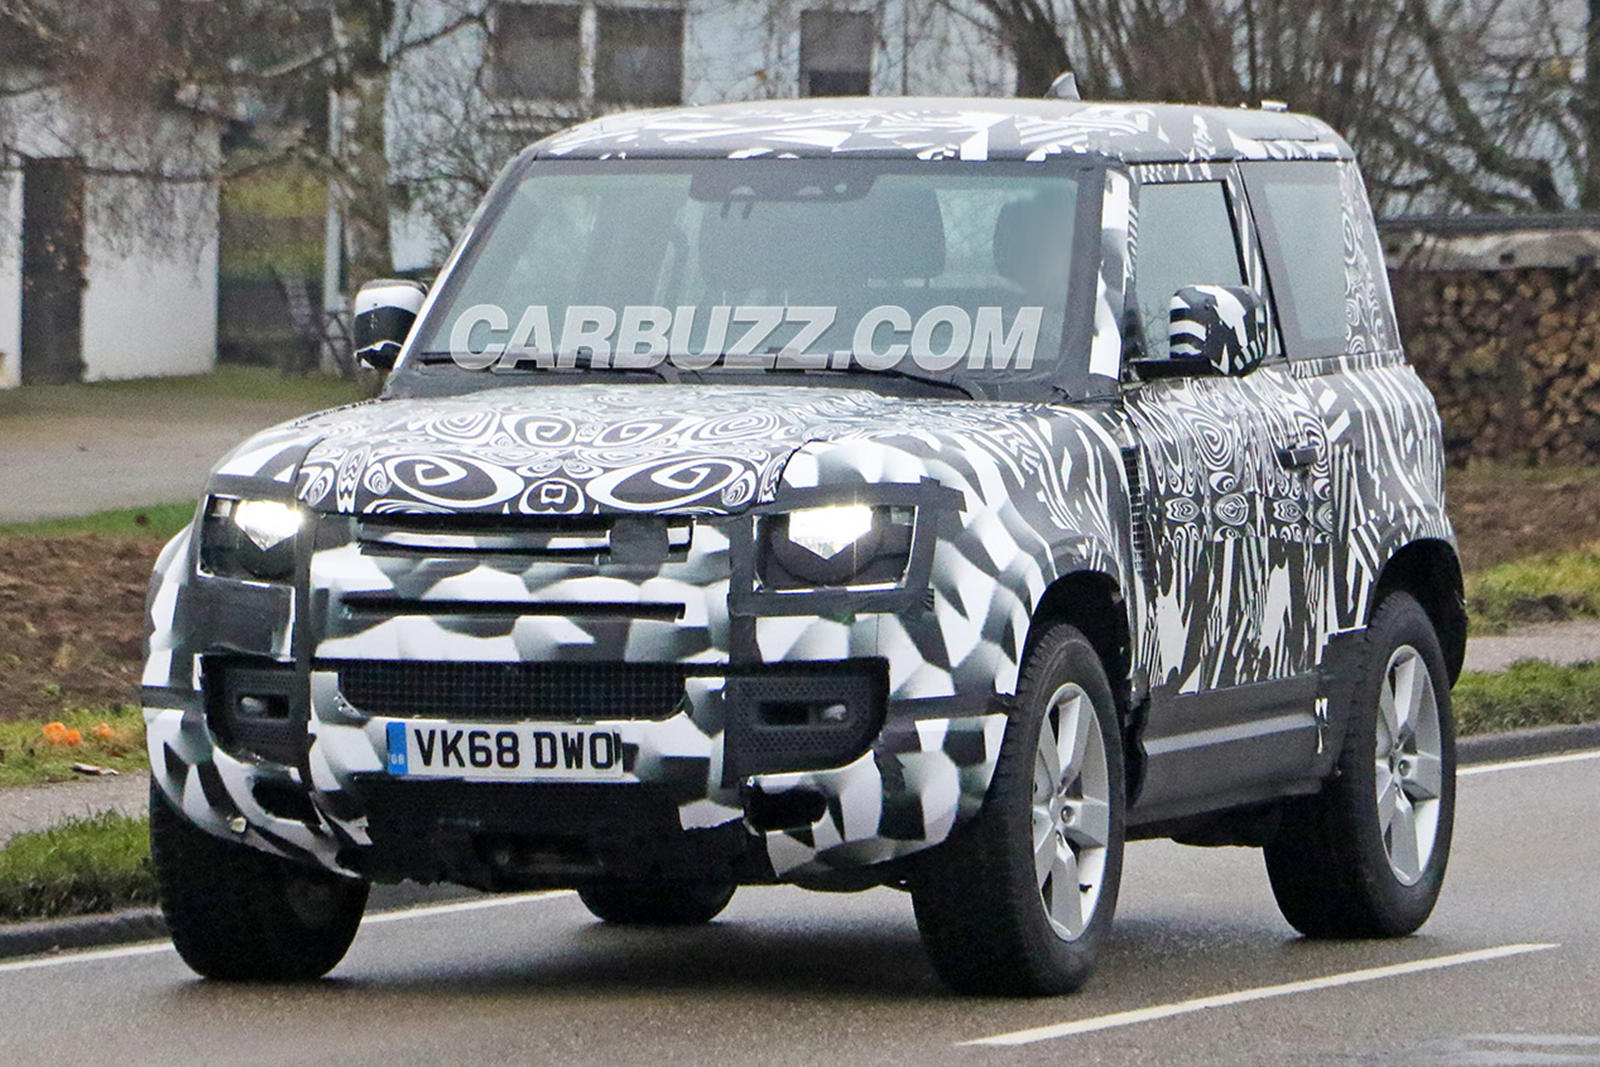 Land Rover vs Ford Bronco: V8 Powered to crush the Bronco